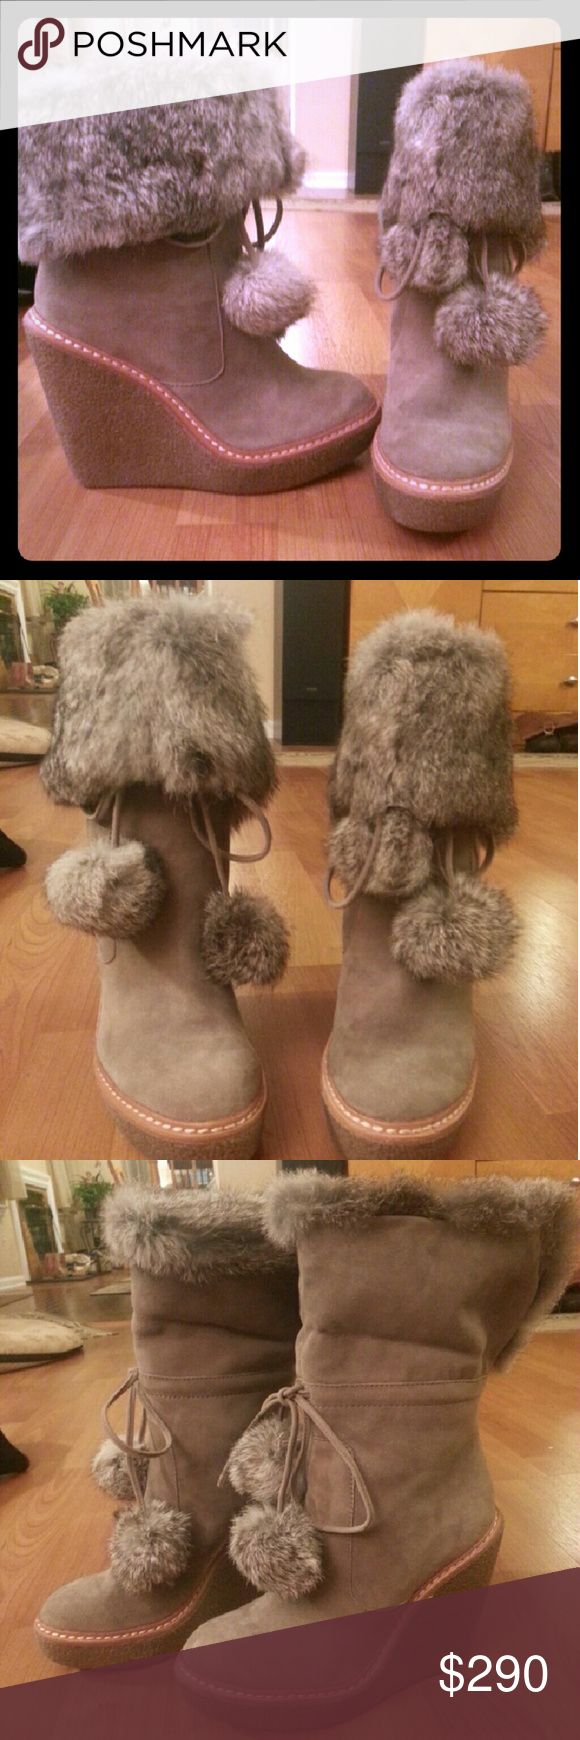 Ash Beige Suede and Fur Wedge Boots ASH beige suede and genuine rabbit fur wedge boots.NWOT, never worn. Extremely comfortable. Size 7. Ash Shoes